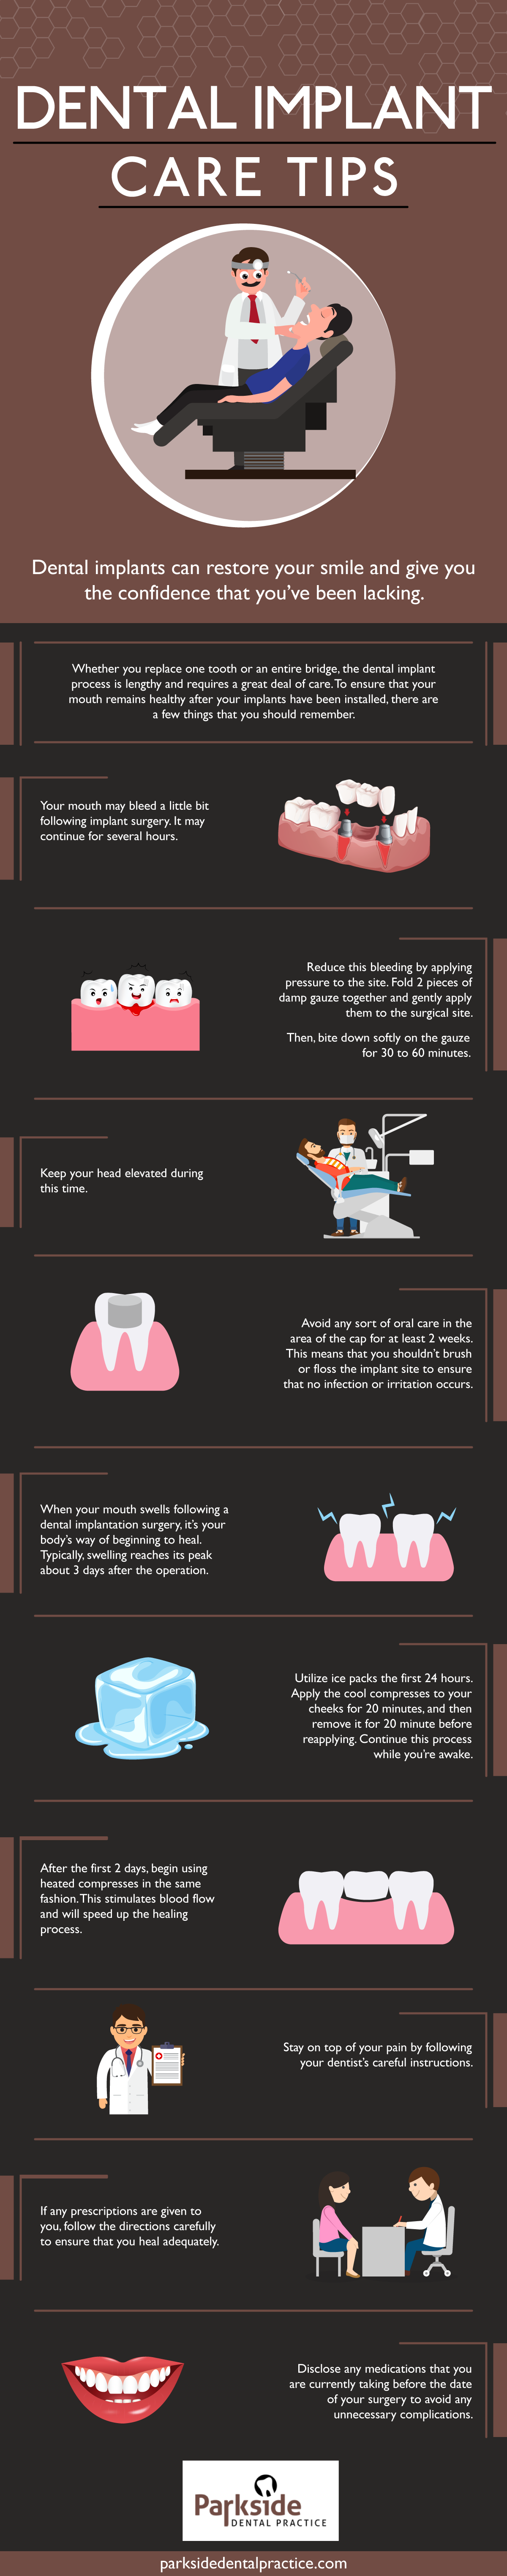 1618956_Parkside-Dental-Practice_Dental-Implant-Care-Tips